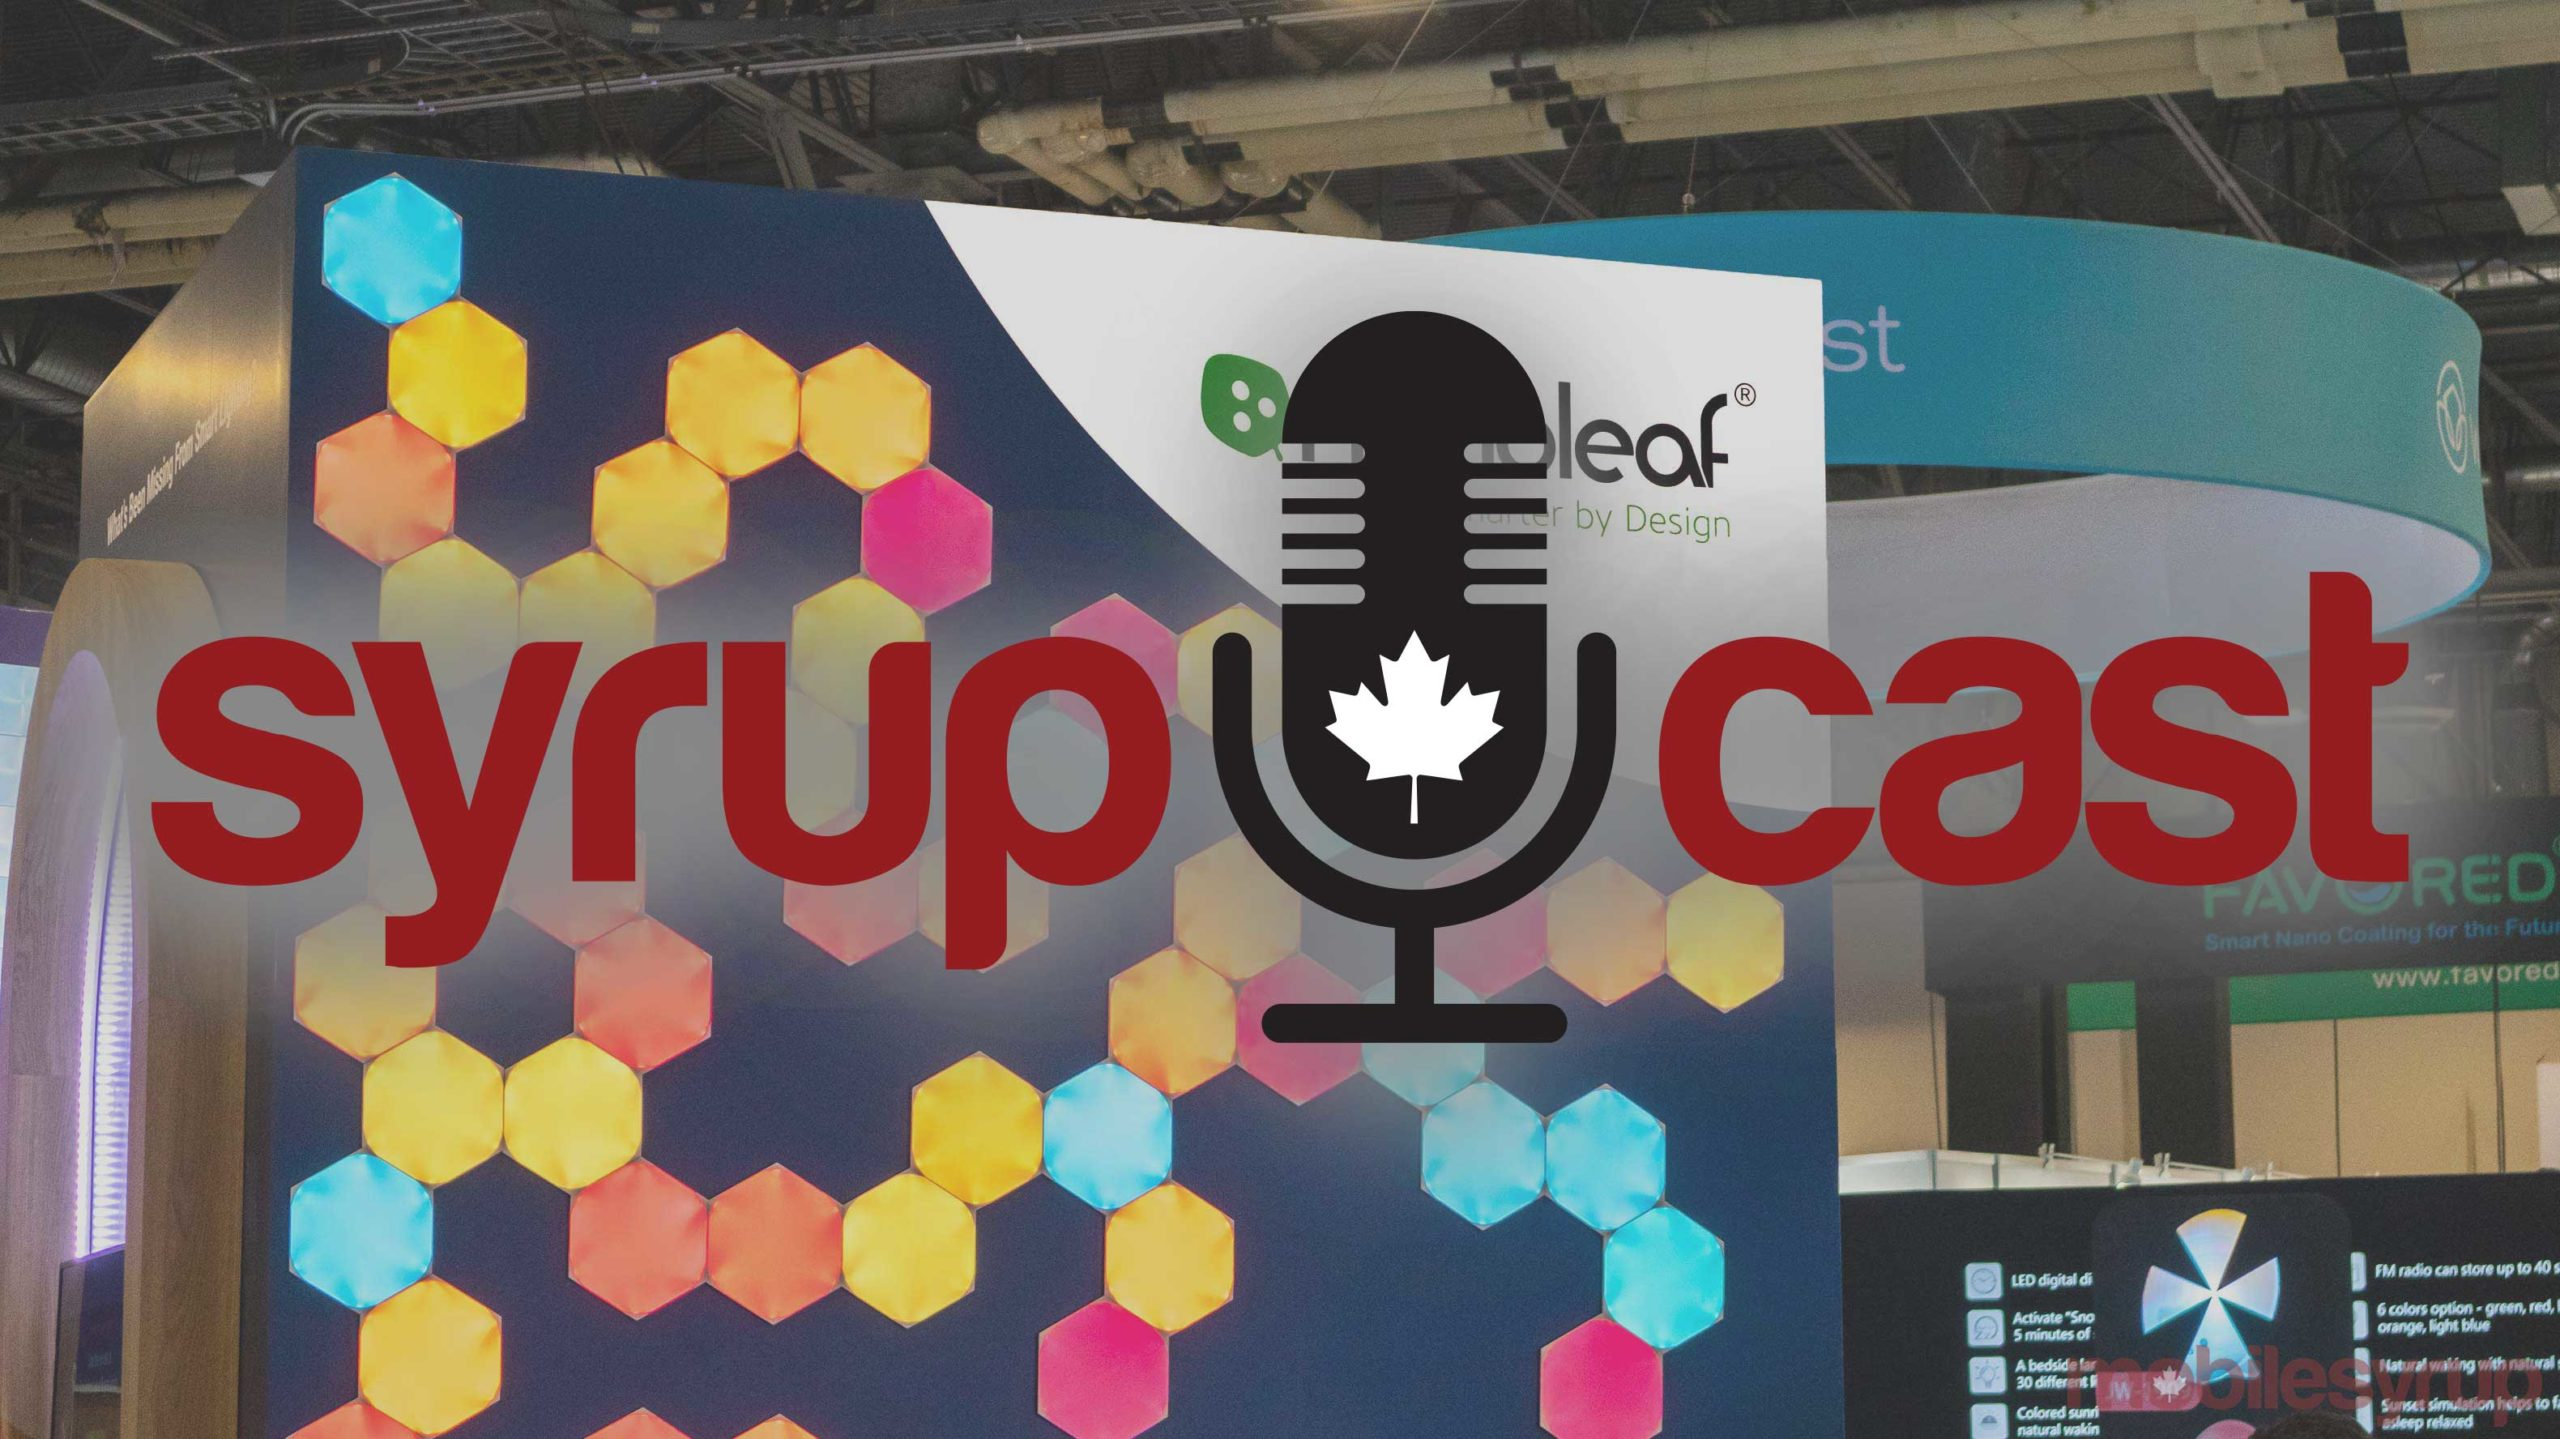 SyrupCast 210: Samsung S20 leaks and CES 2020